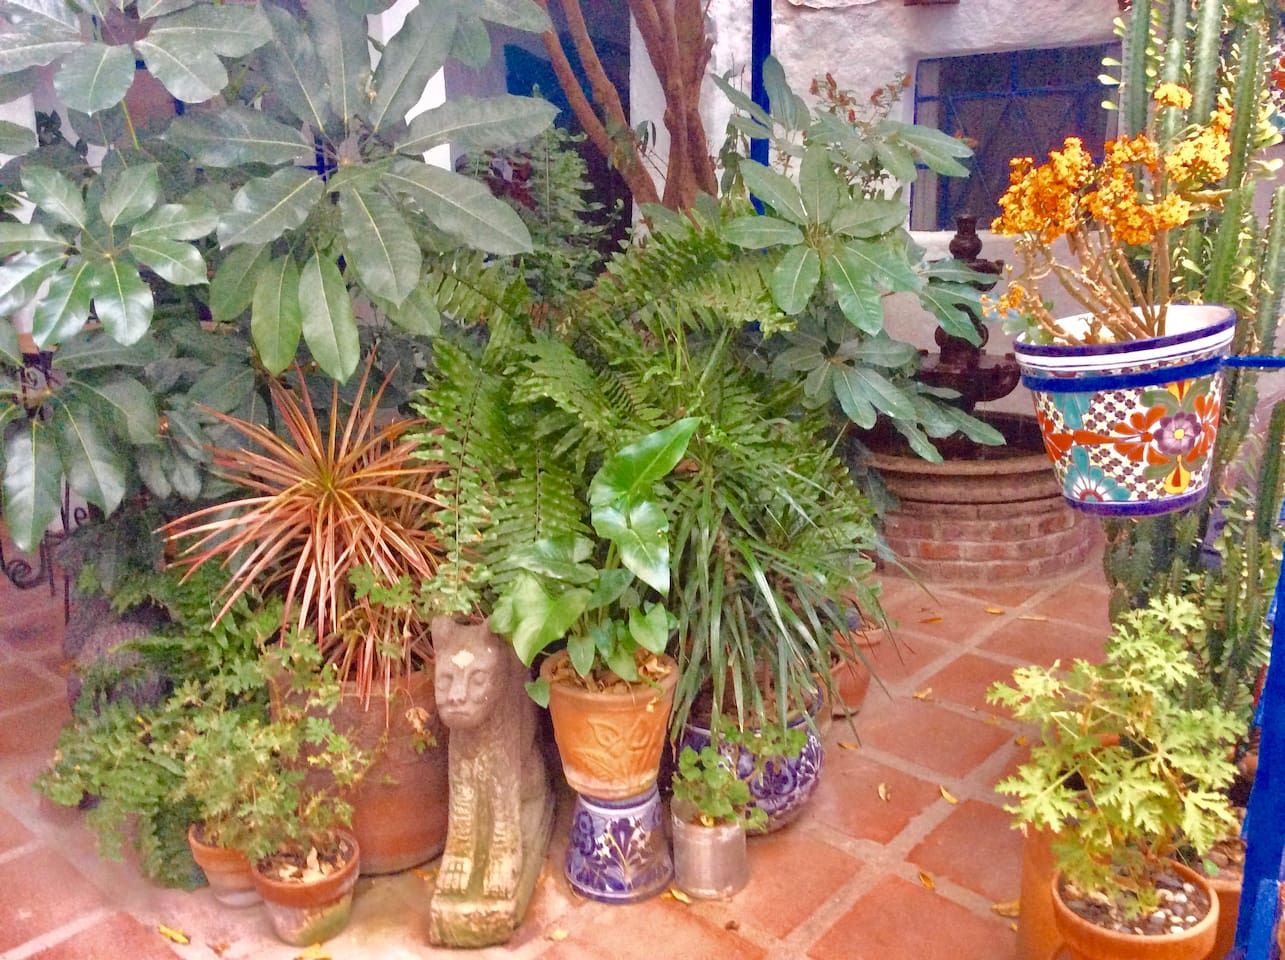 Step inside the front door and be greeted by a jungle of plants.